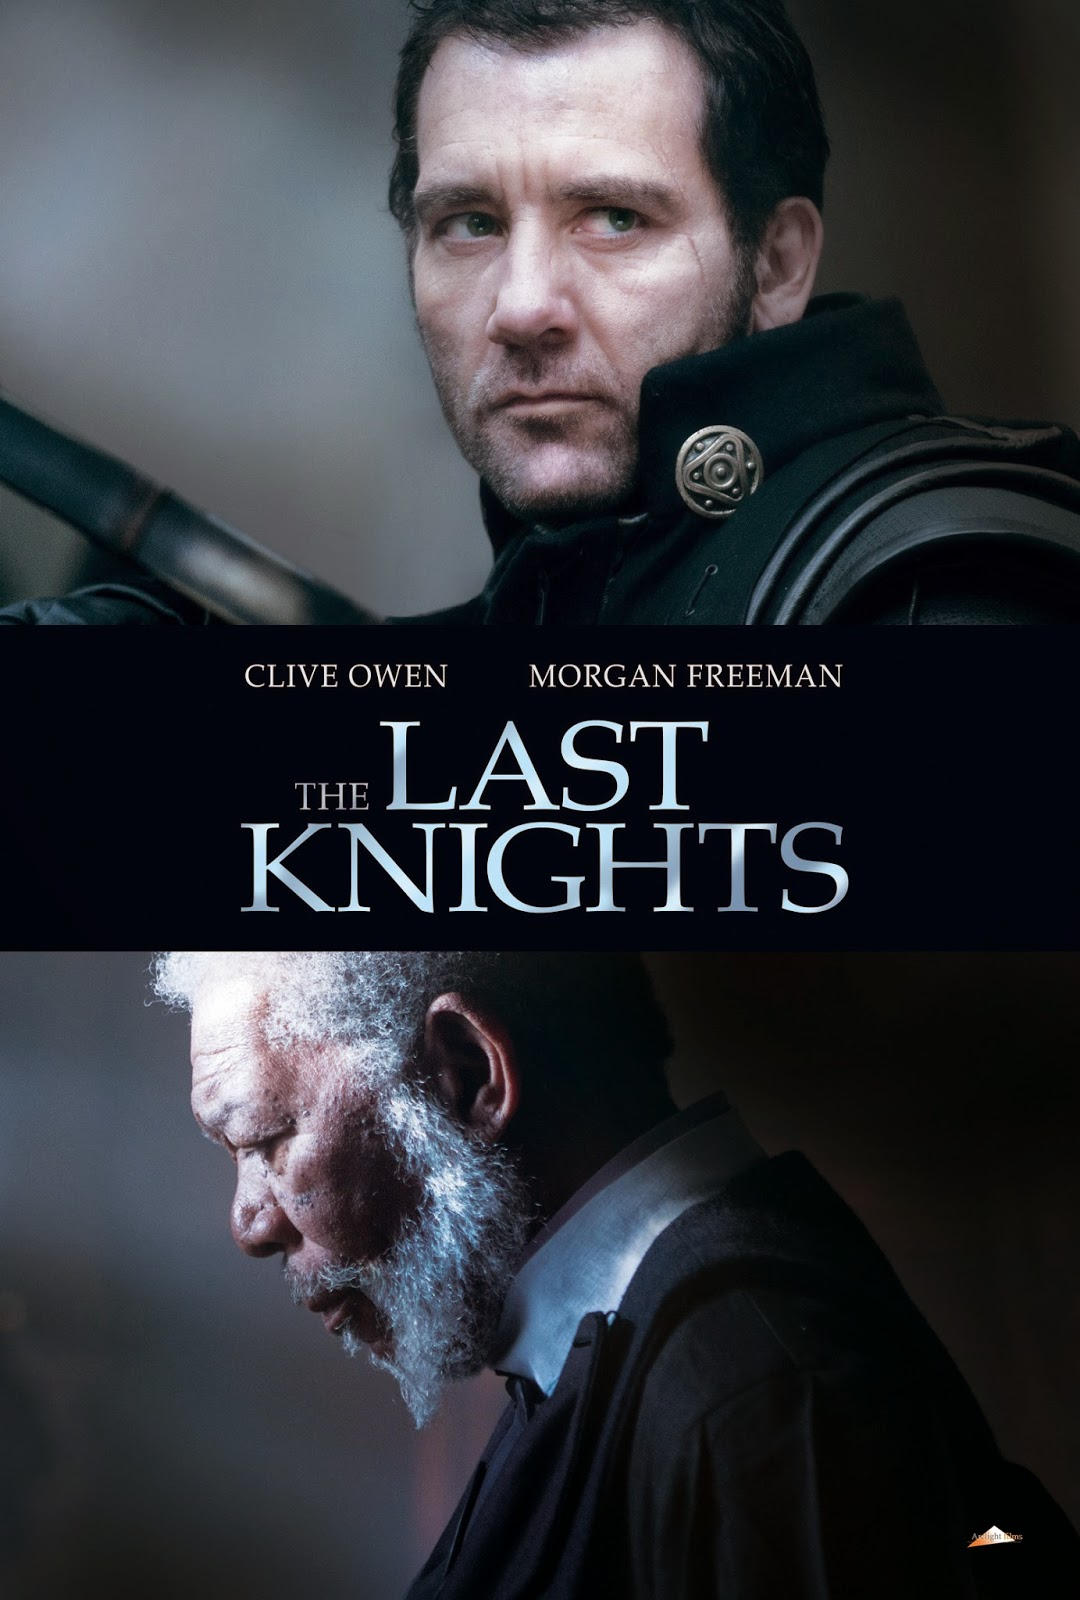 THE LAST KNIGHTS-Official Poster Banner PROMO PHOTOS-05AGOSTO2014-06